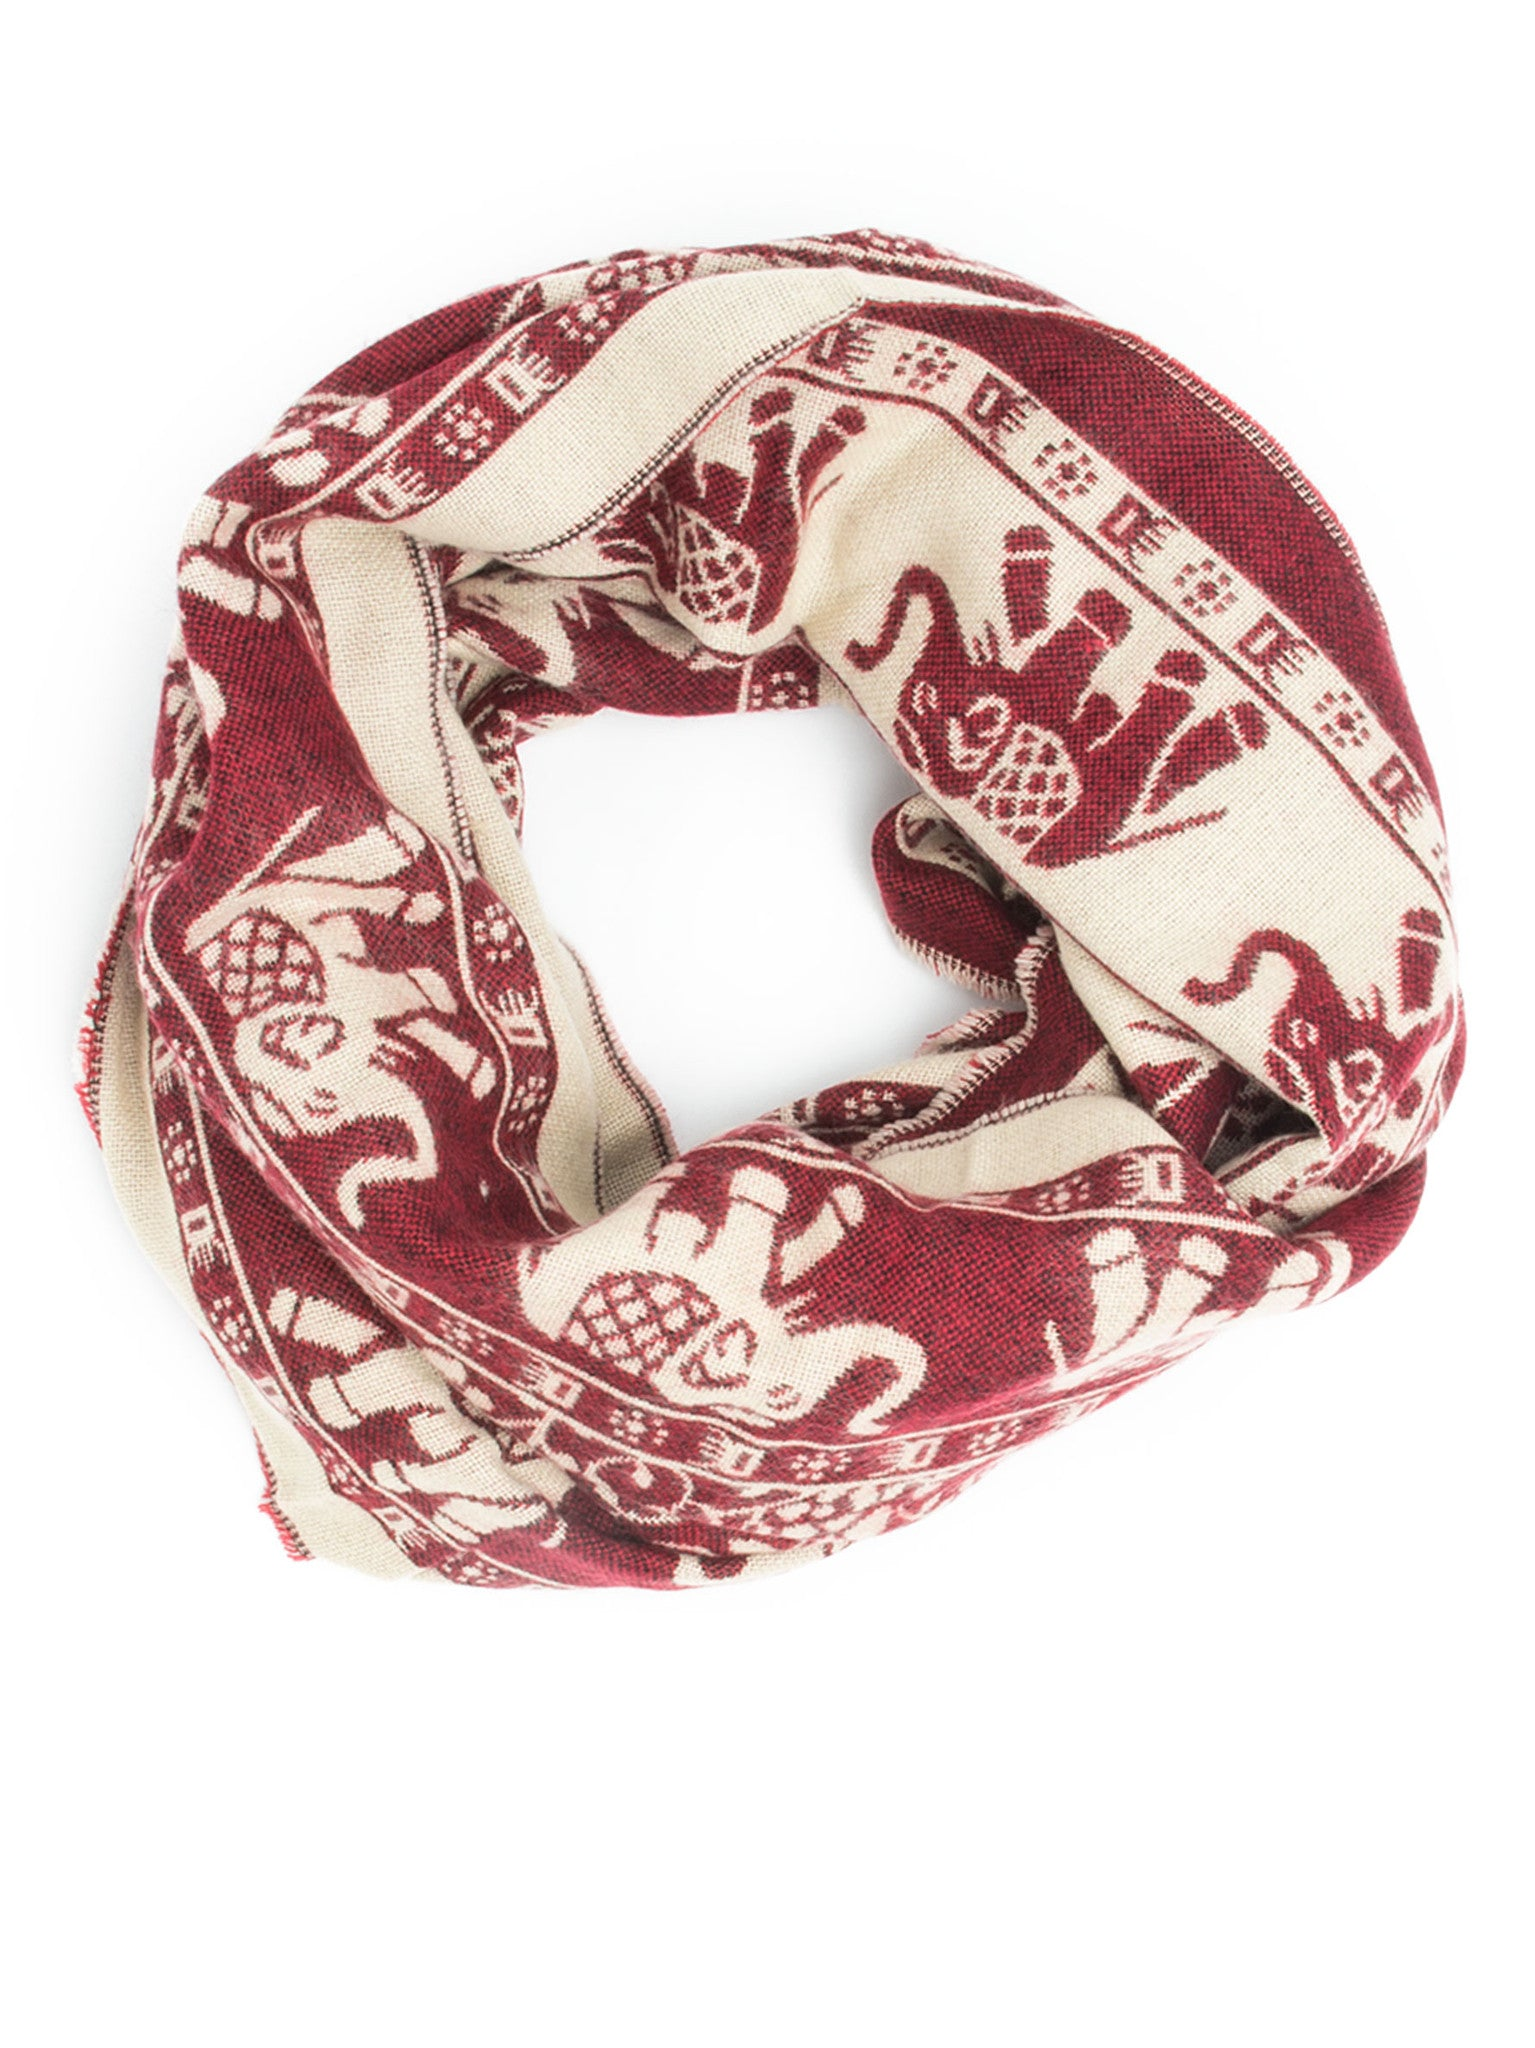 Scarves - Hathi Winter Infinity Scarf, Blanket Scarf, Indian Elephant Design -(Berry/Ivory) Bohomonde  - 2